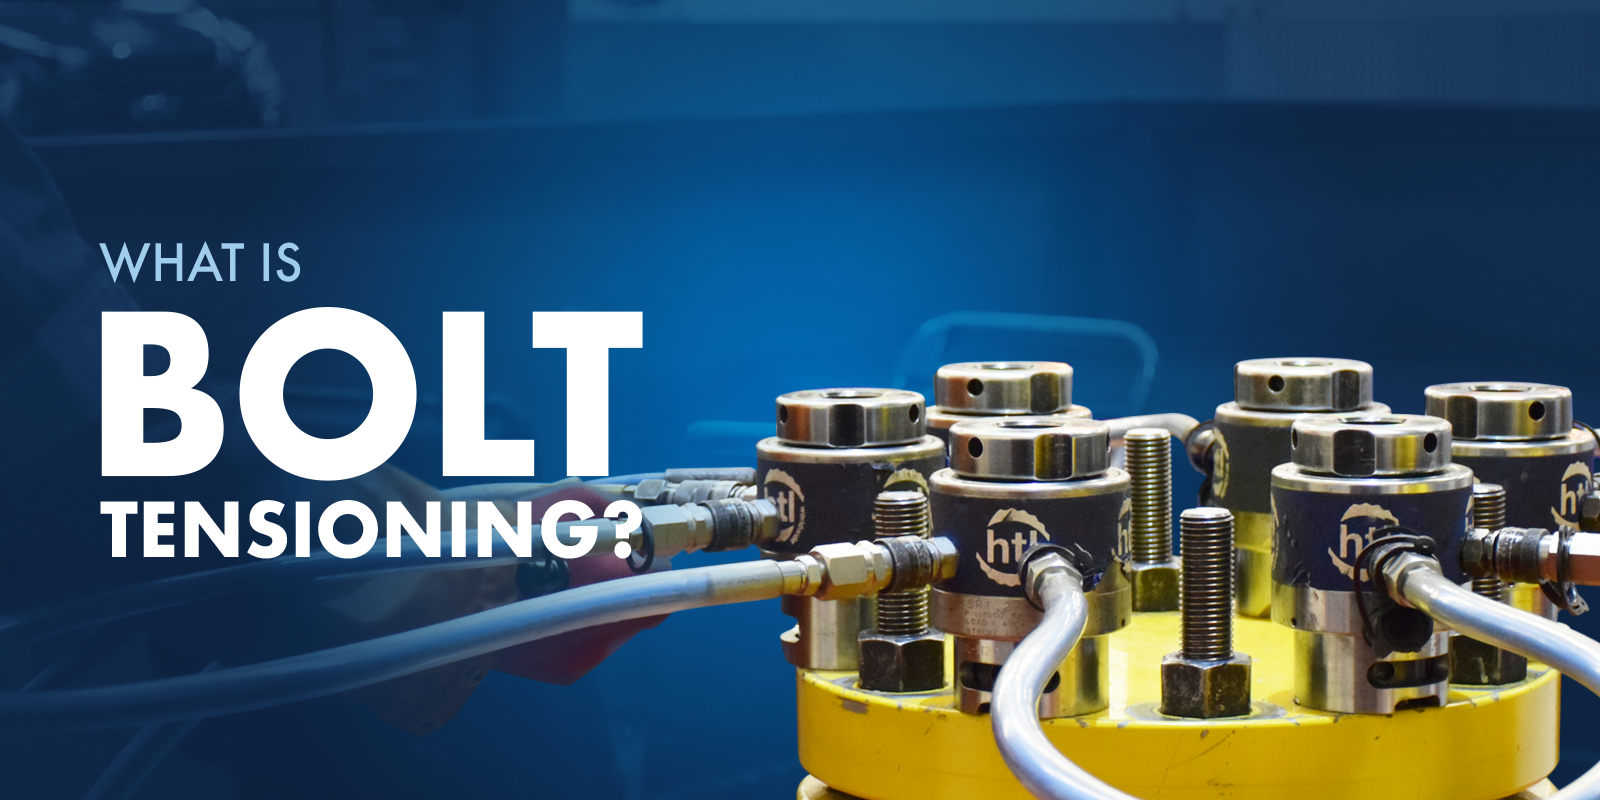 What is Bolt Tensioning?